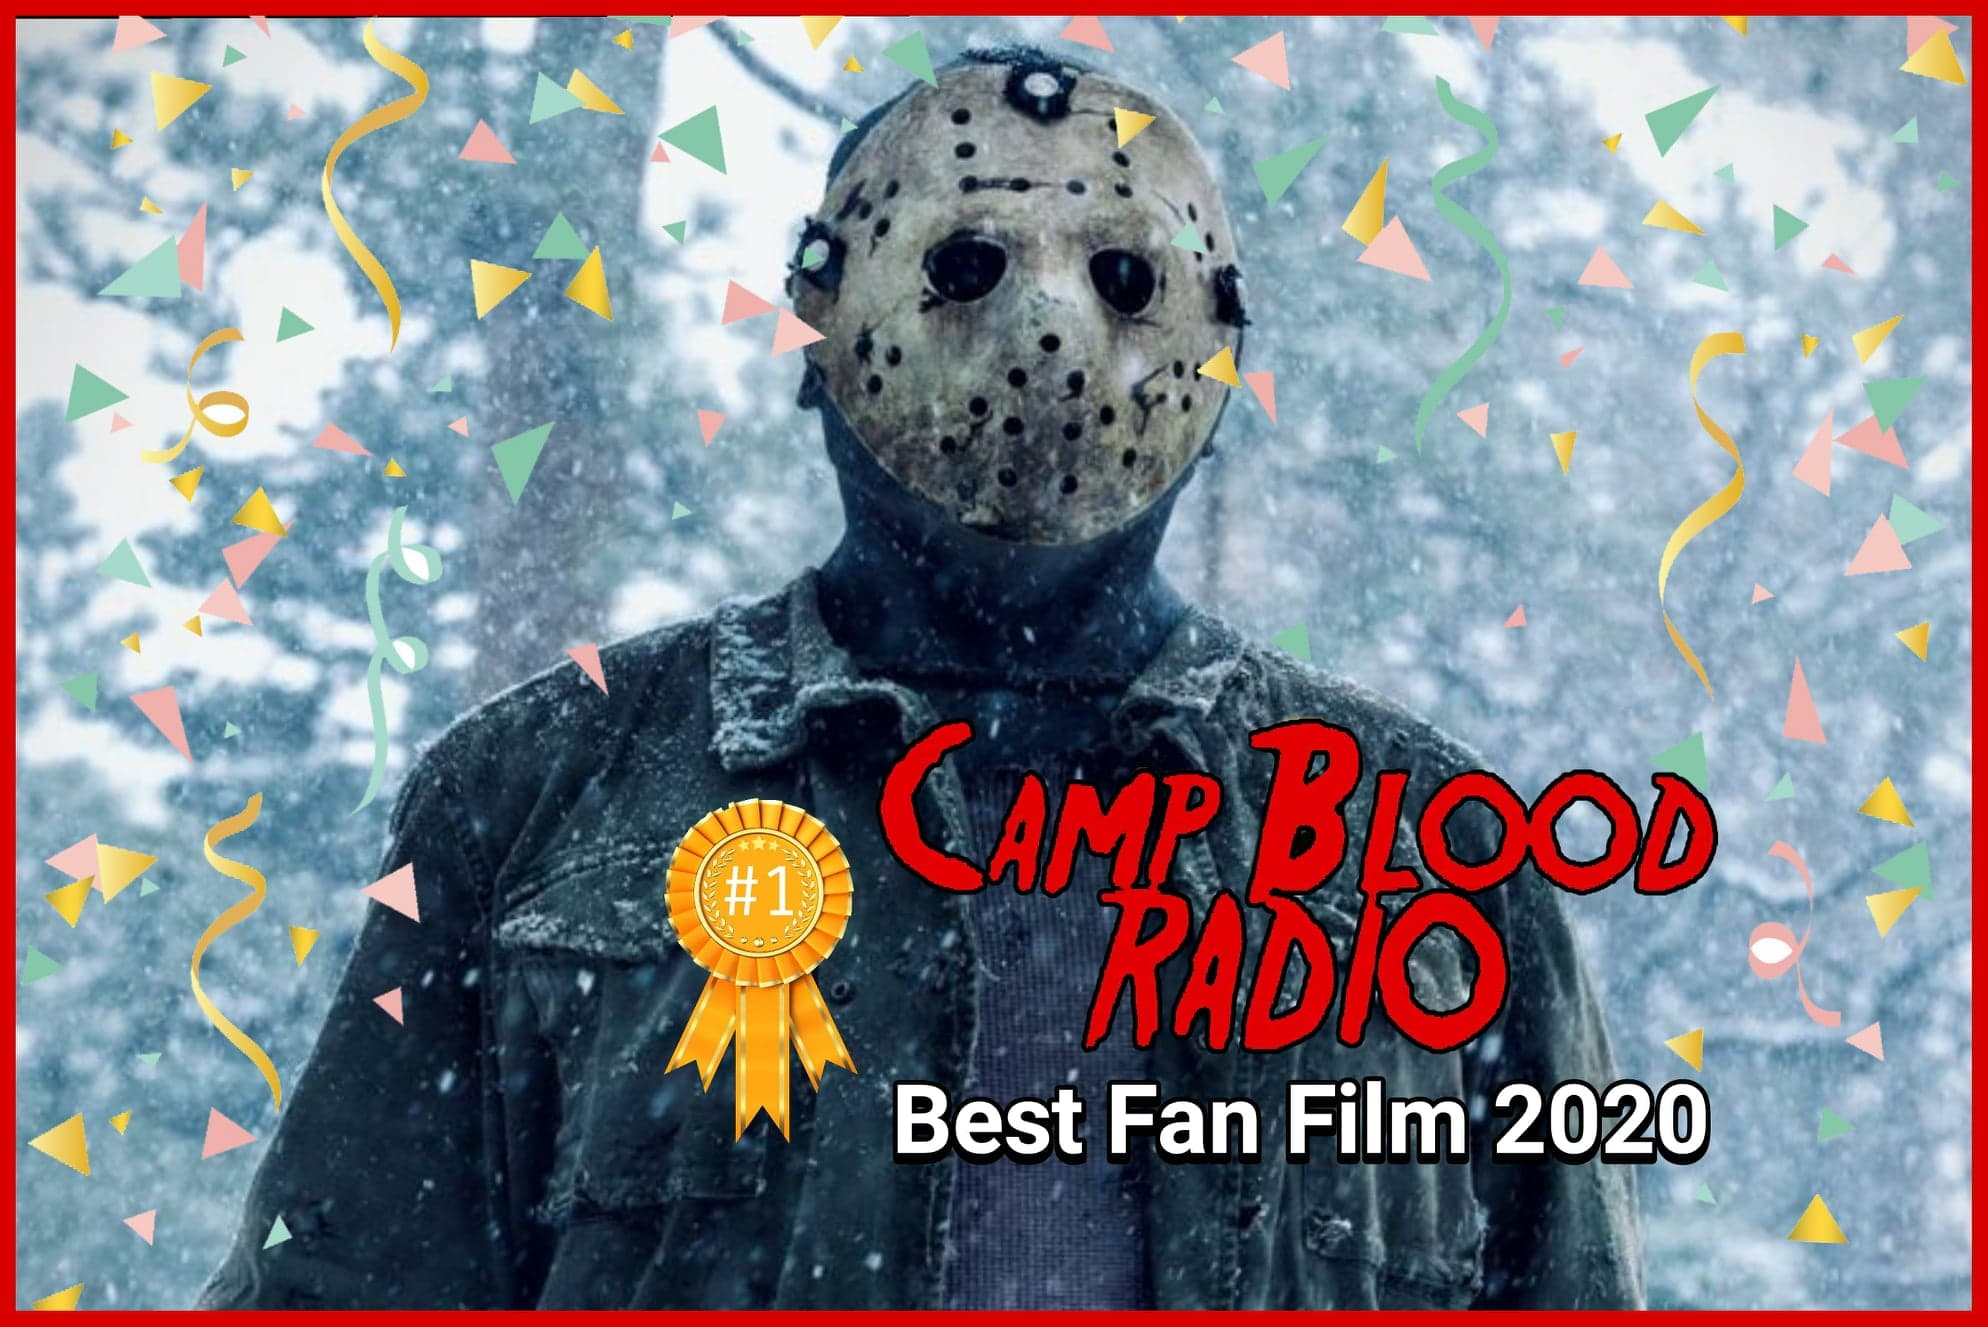 Best Friday the 13th Fan Film of 2020